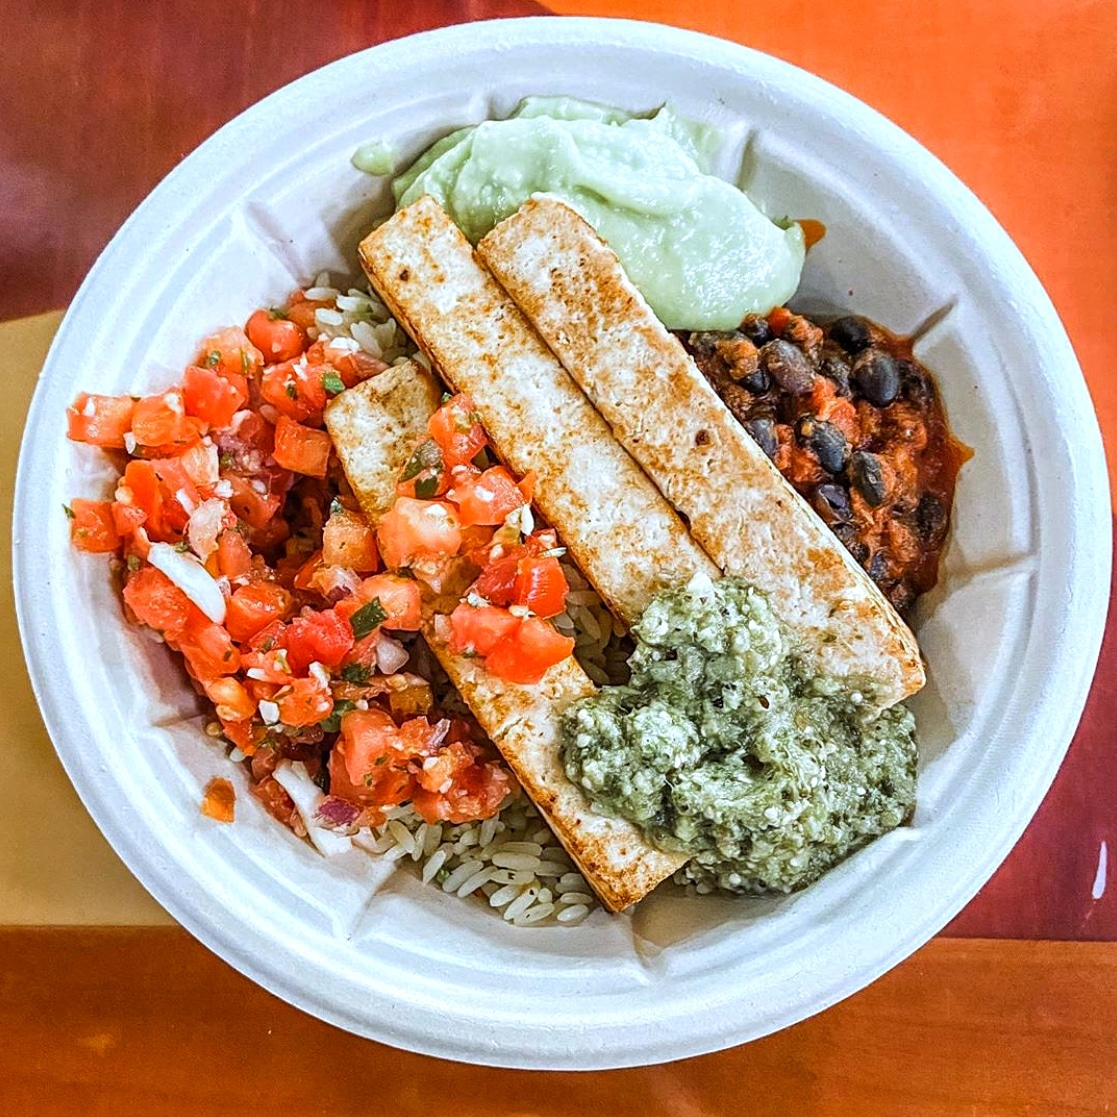 Contempo Cafe Vegan Grilled Tofu Bowl in Disney's Contemporary Resort at Walt Disney World